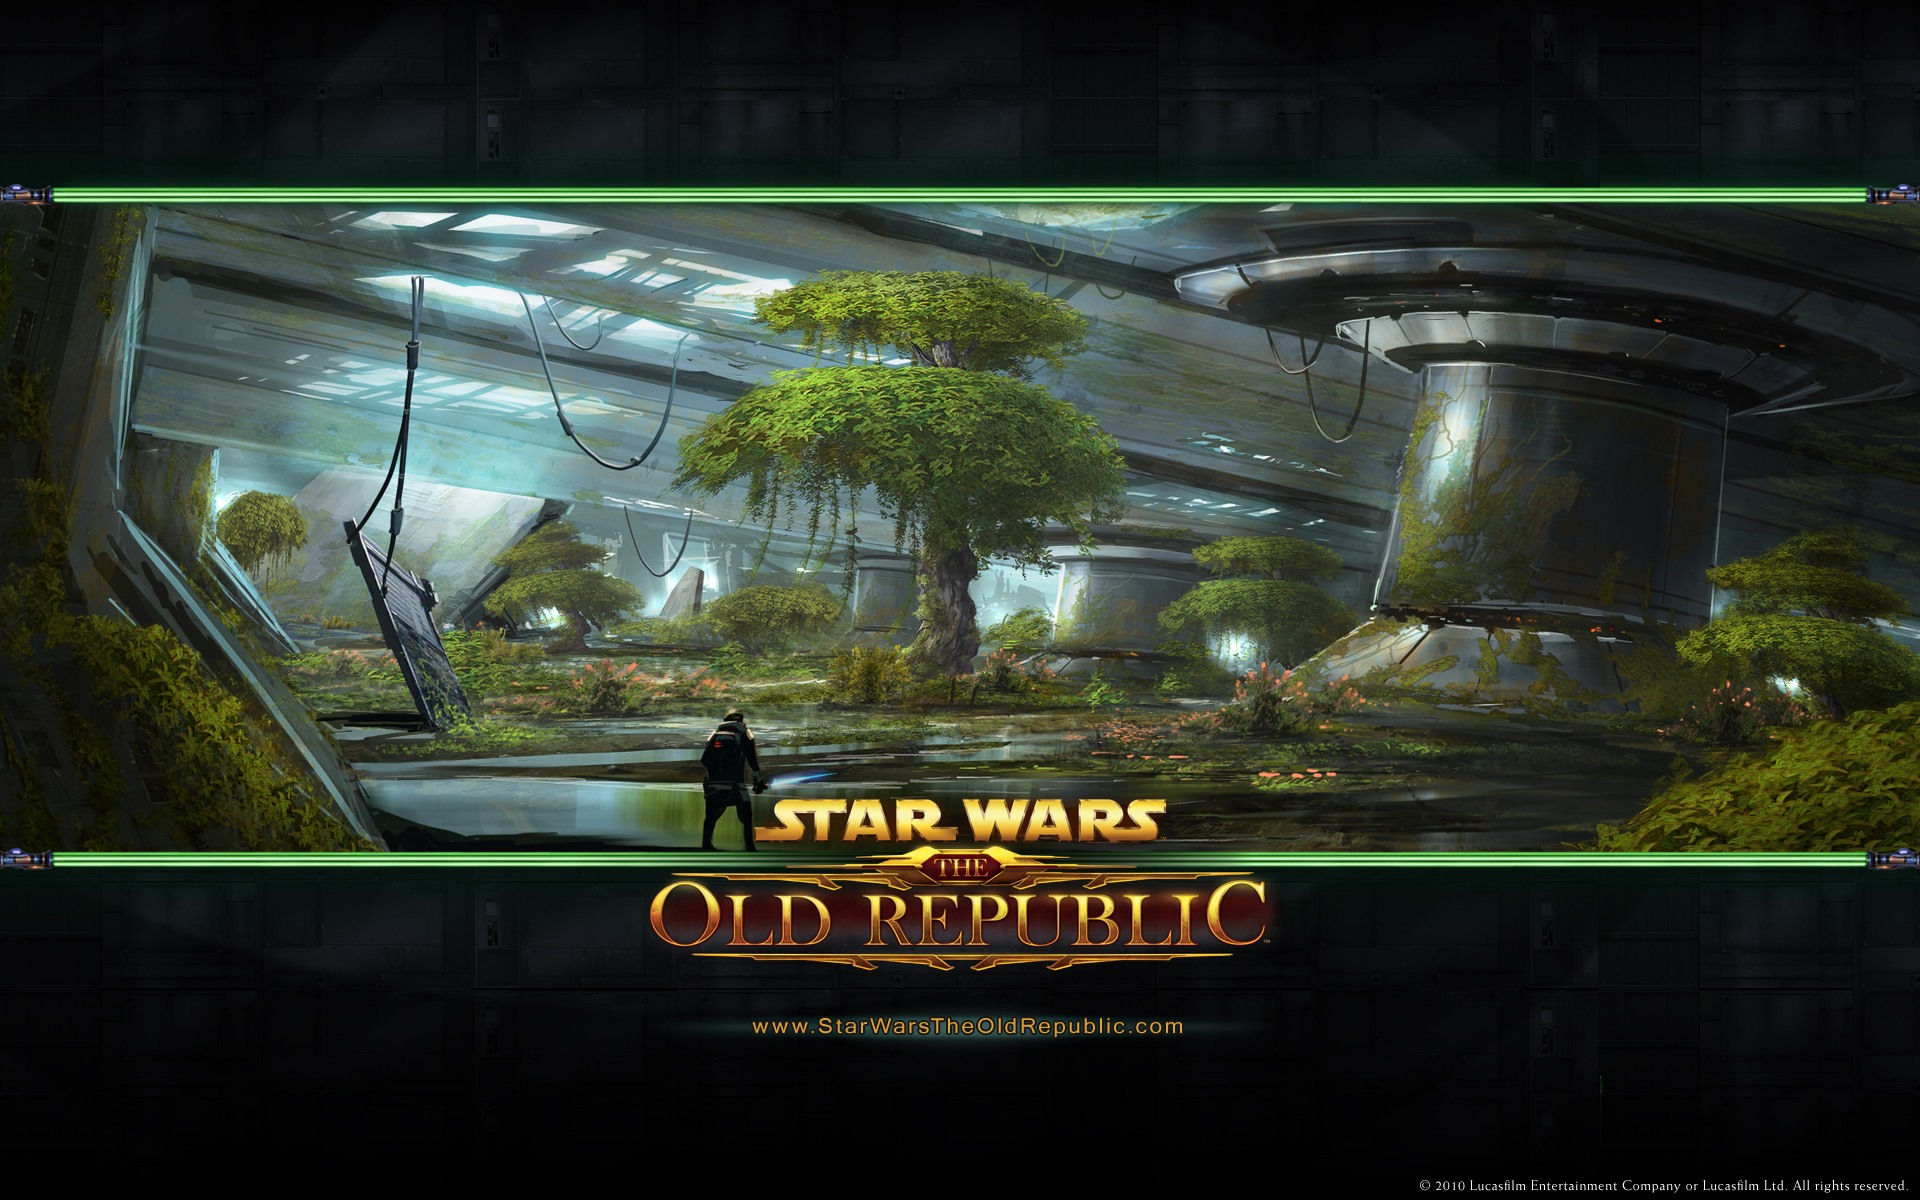 1920x1200 Star Wars Old Republic How To Set Wallpaper On Your Desktop Click The Download Link From Above And